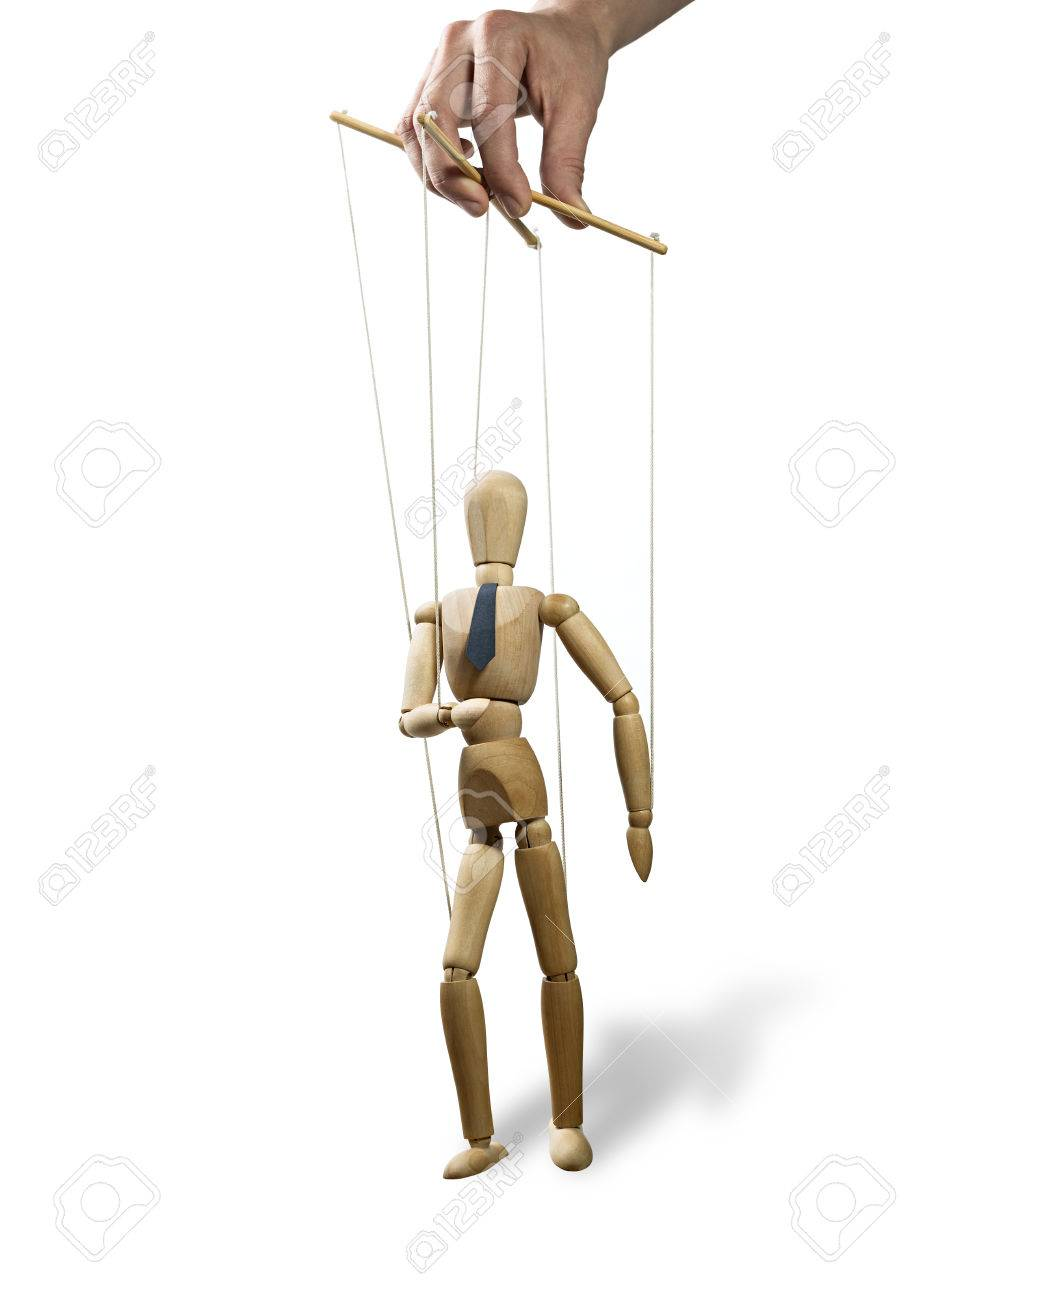 Puppet in the hands of puppeteer walks on isolated, white background